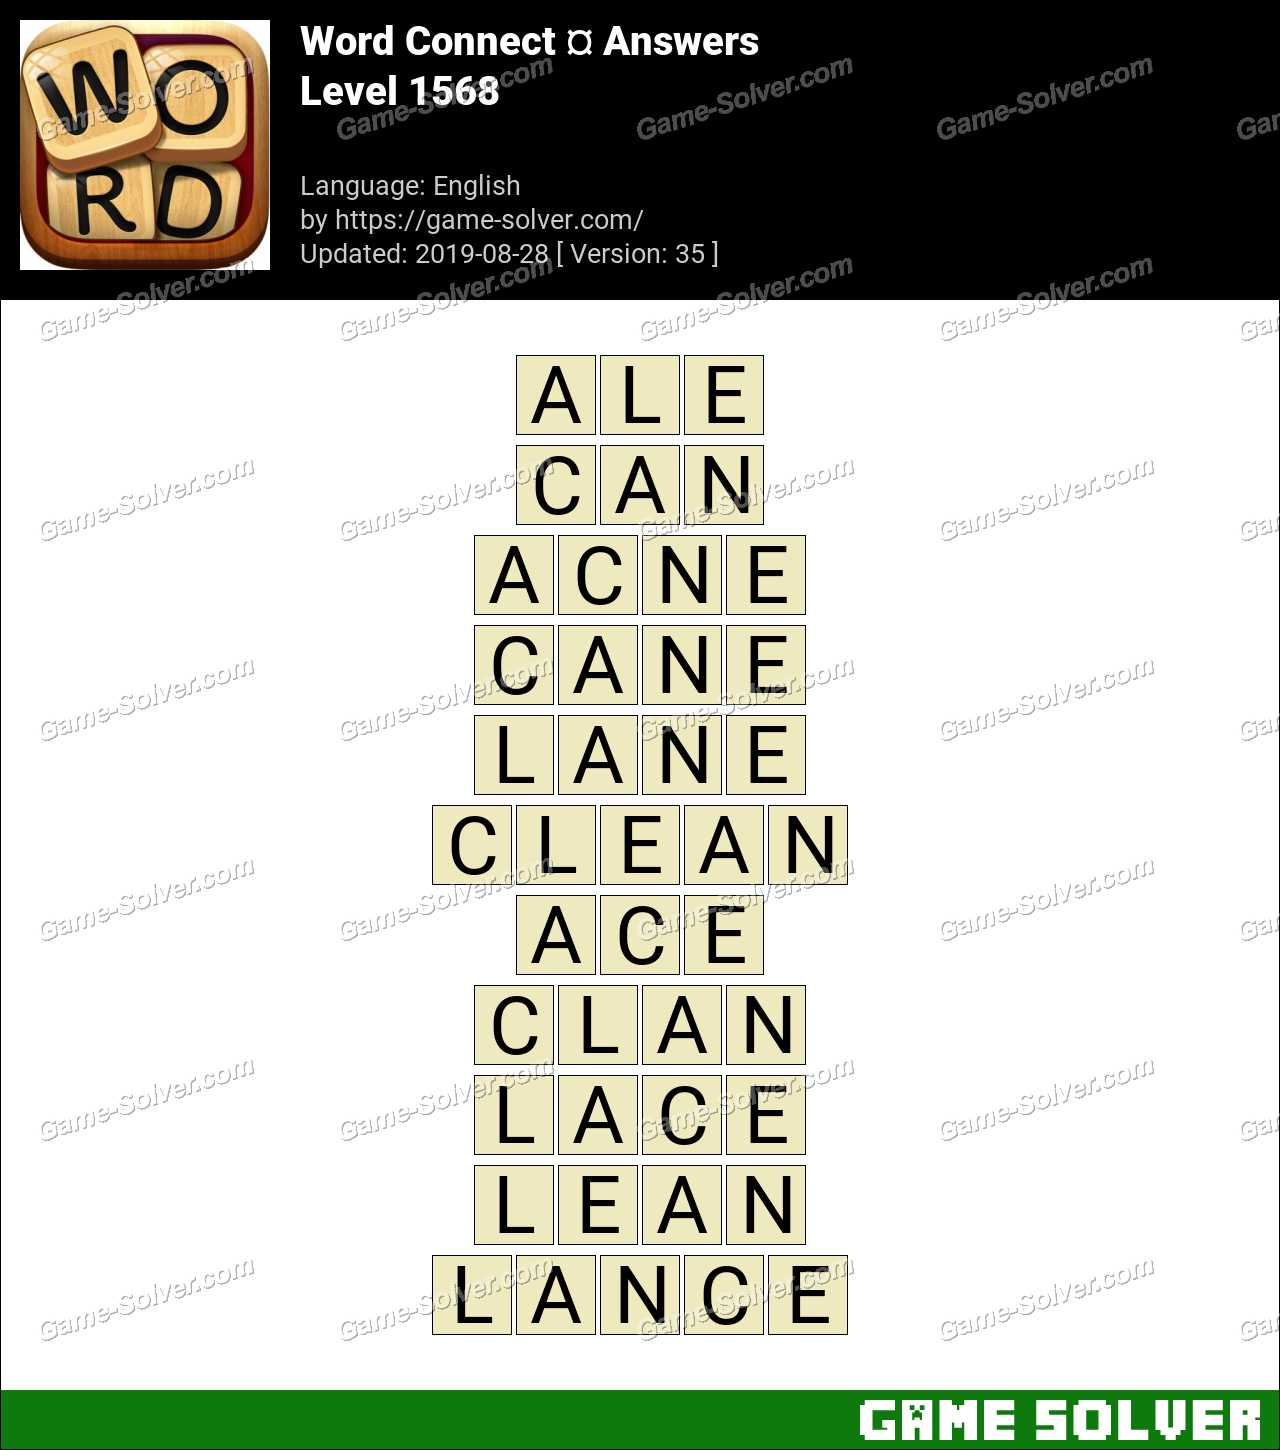 Word Connect Level 1568 Answers